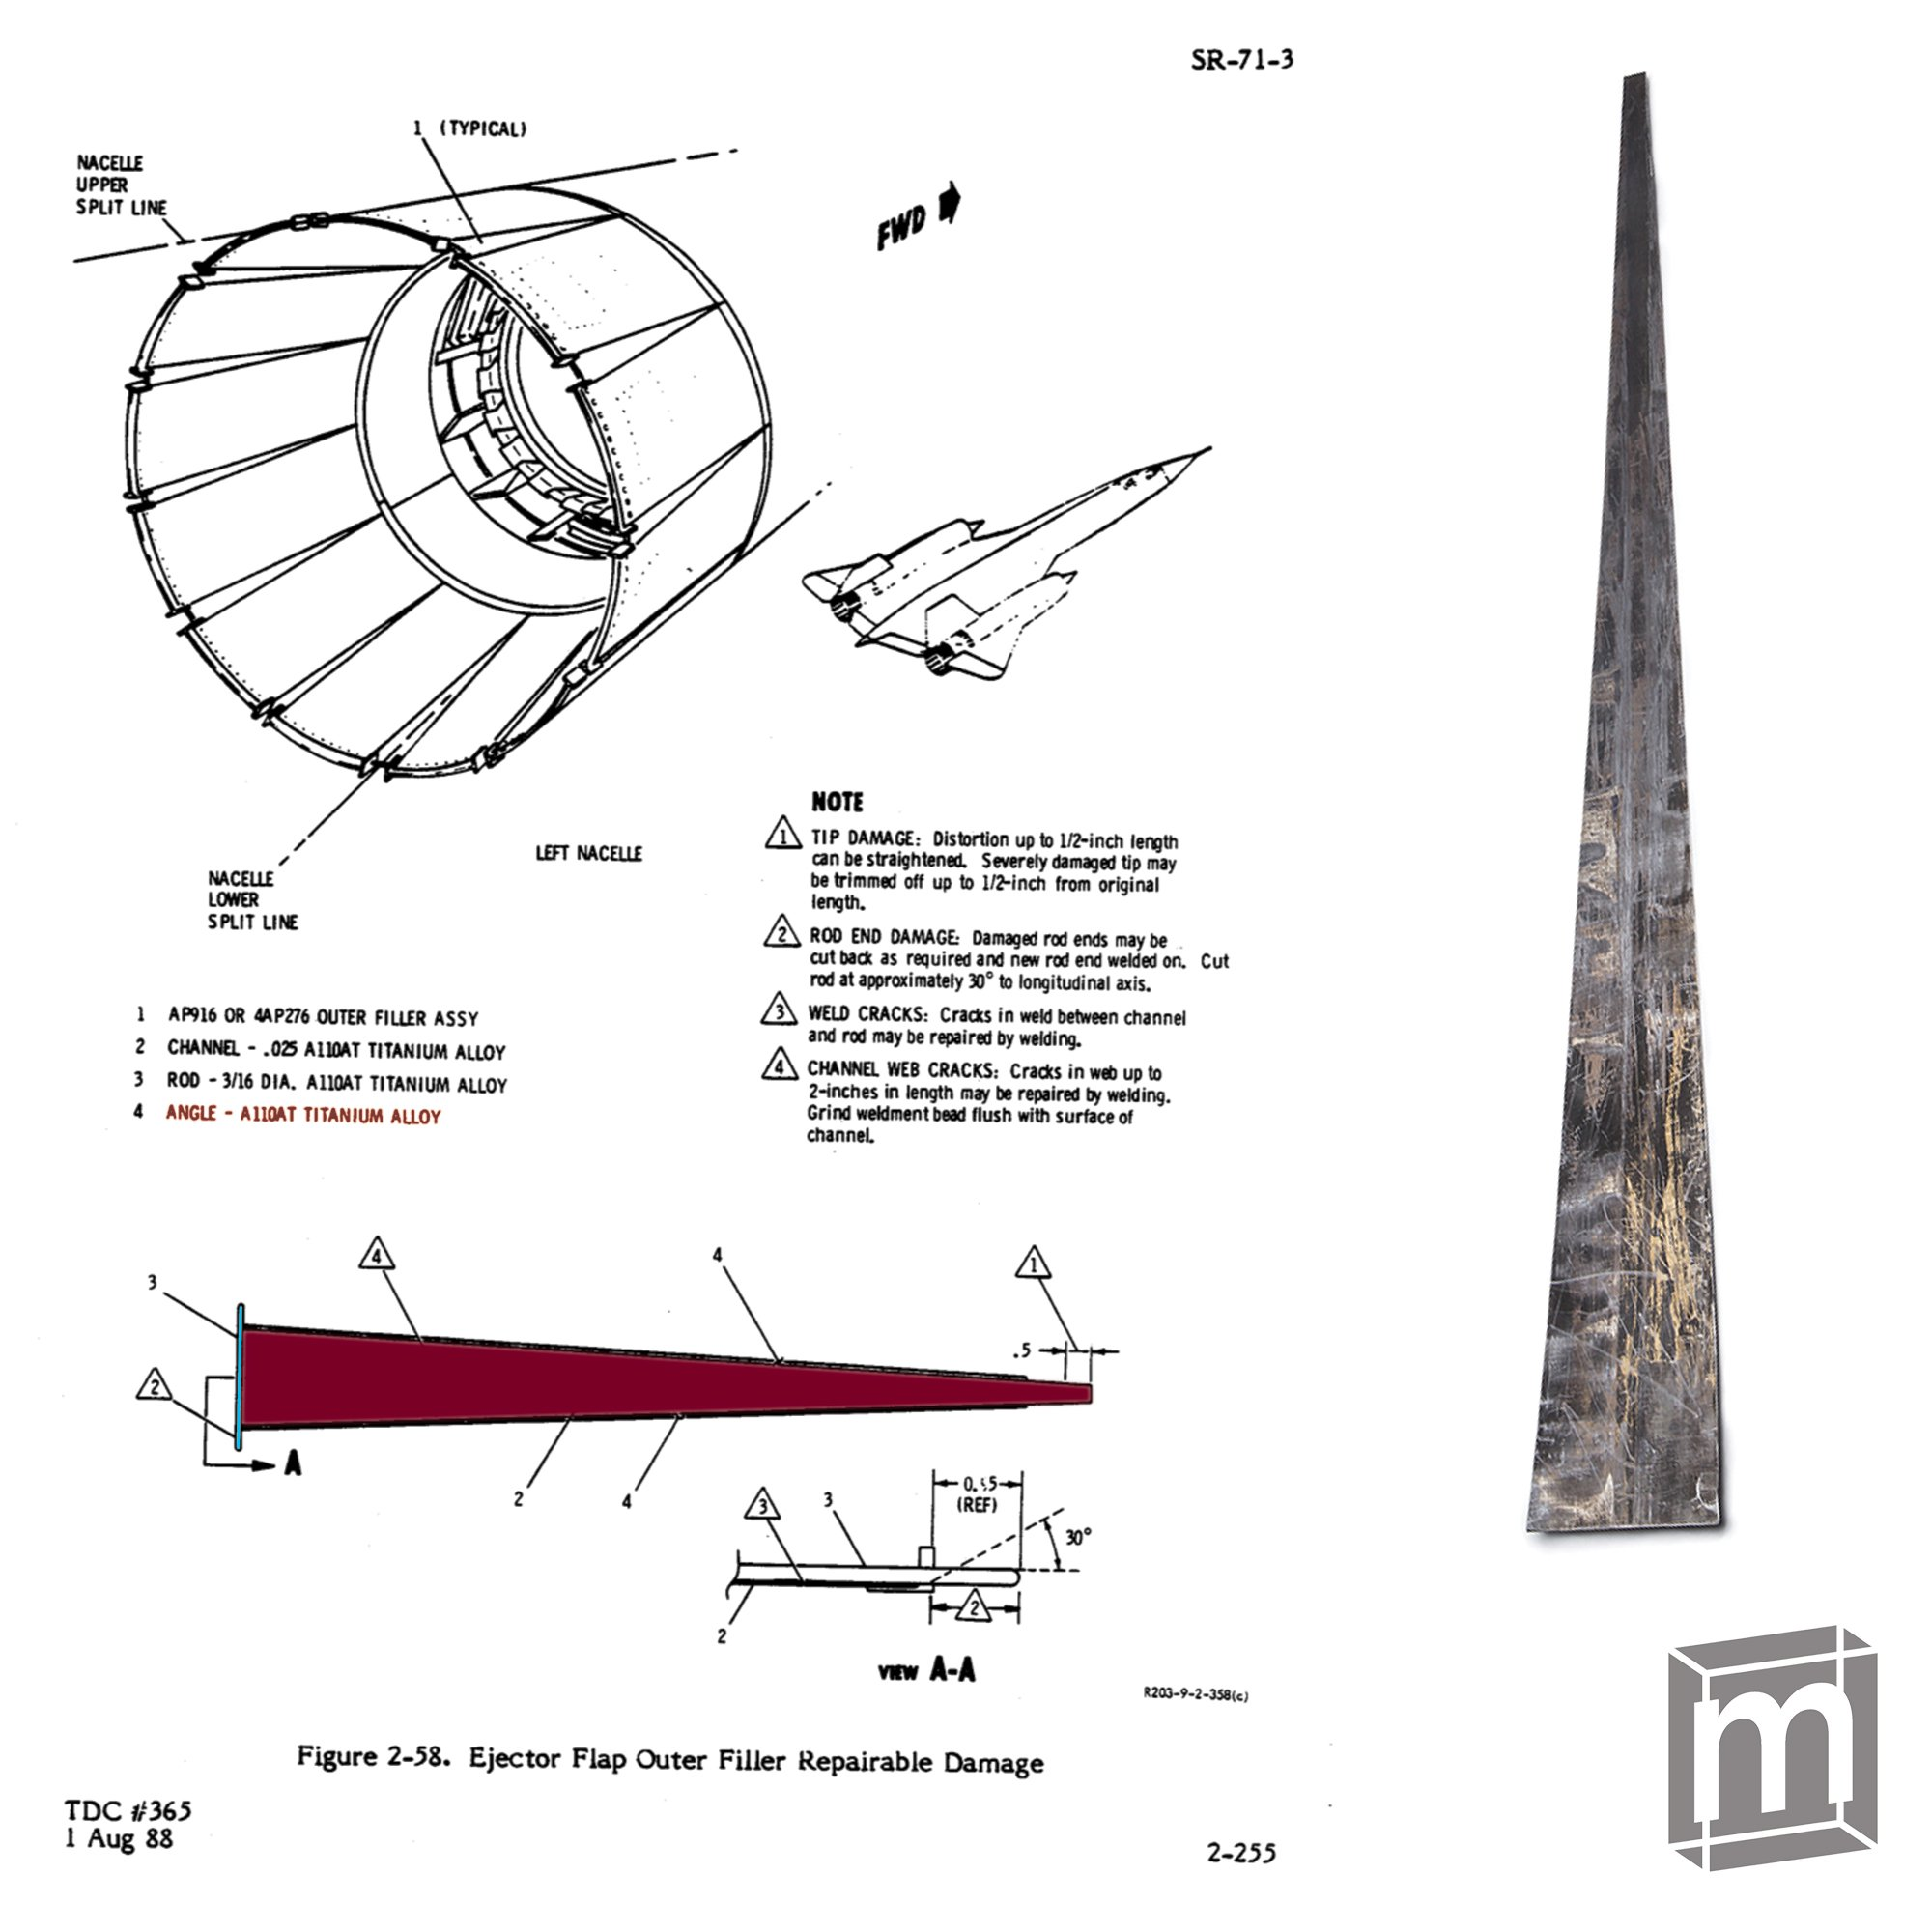 SR-71 Technical Repair Manual. (source: Daniel Freeman, Supervisor and  Chief of Metals Technology for the 9th Reconnaissance Wing I)